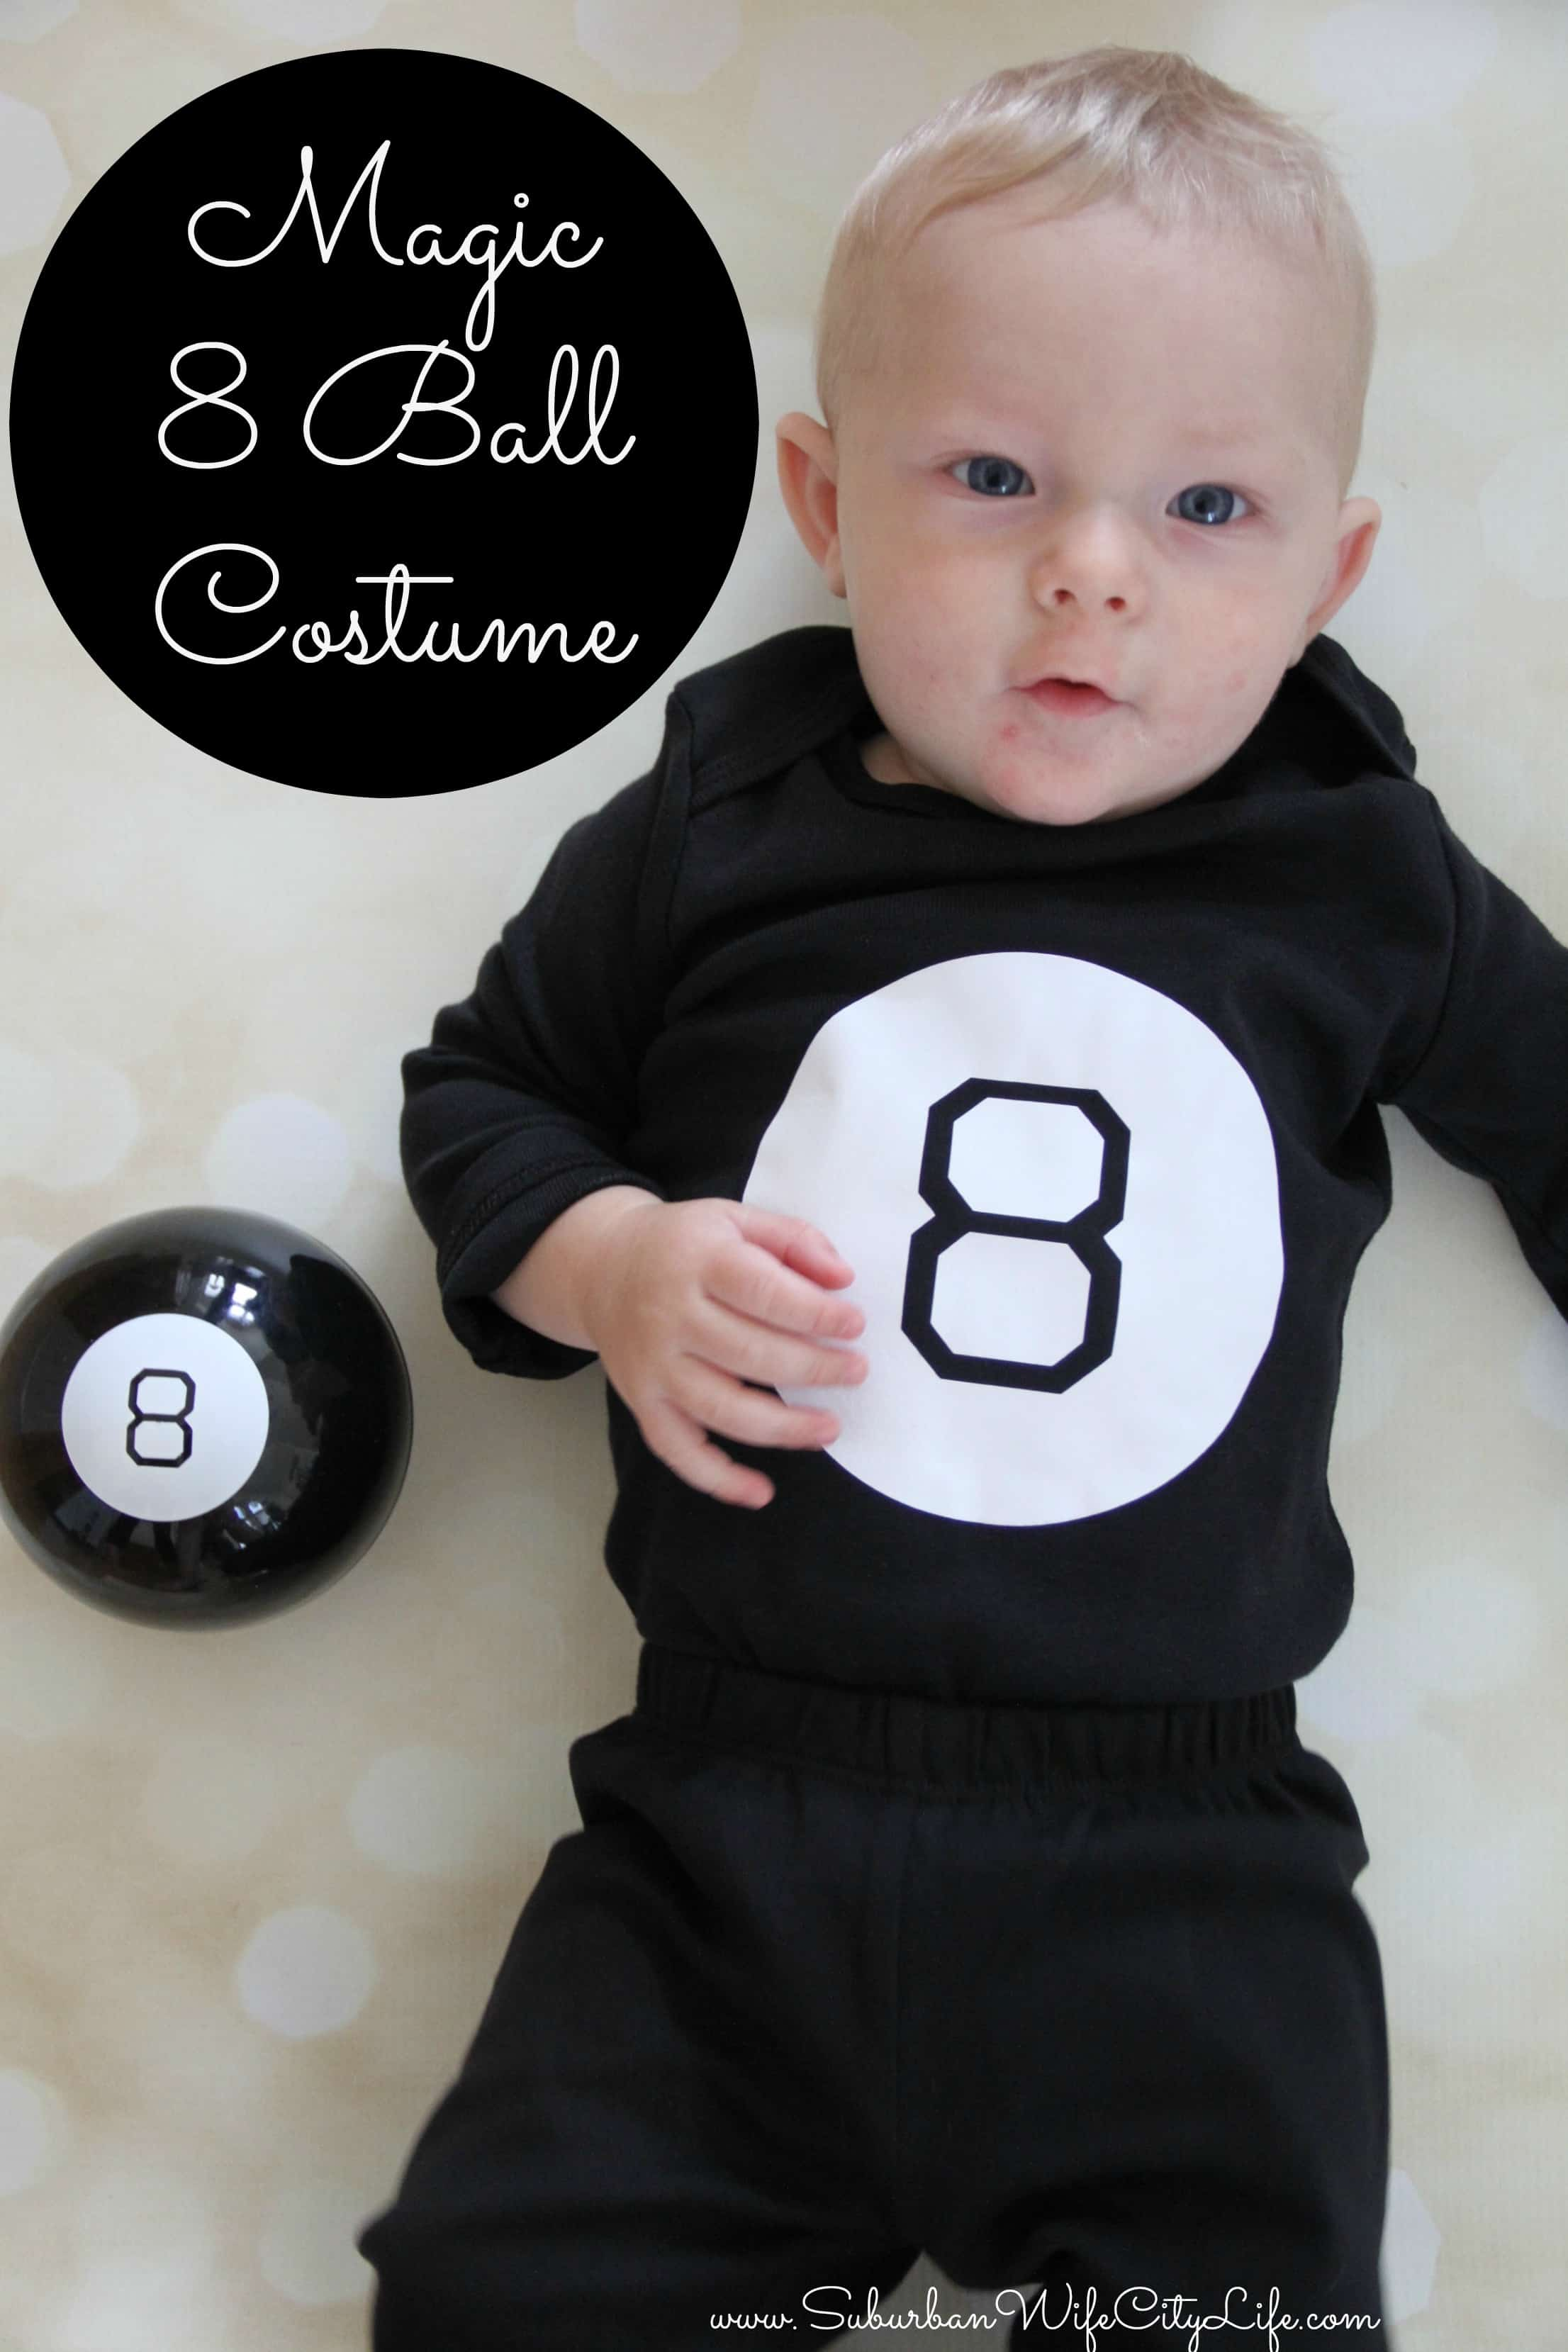 Magic 8 Ball Costume DIY